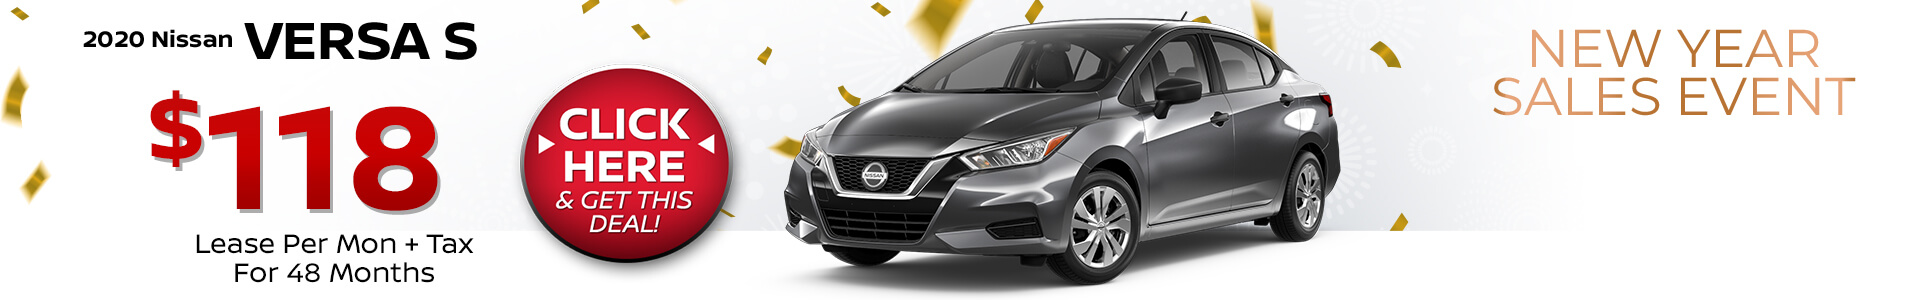 2020 Nissan Versa Lease for $118